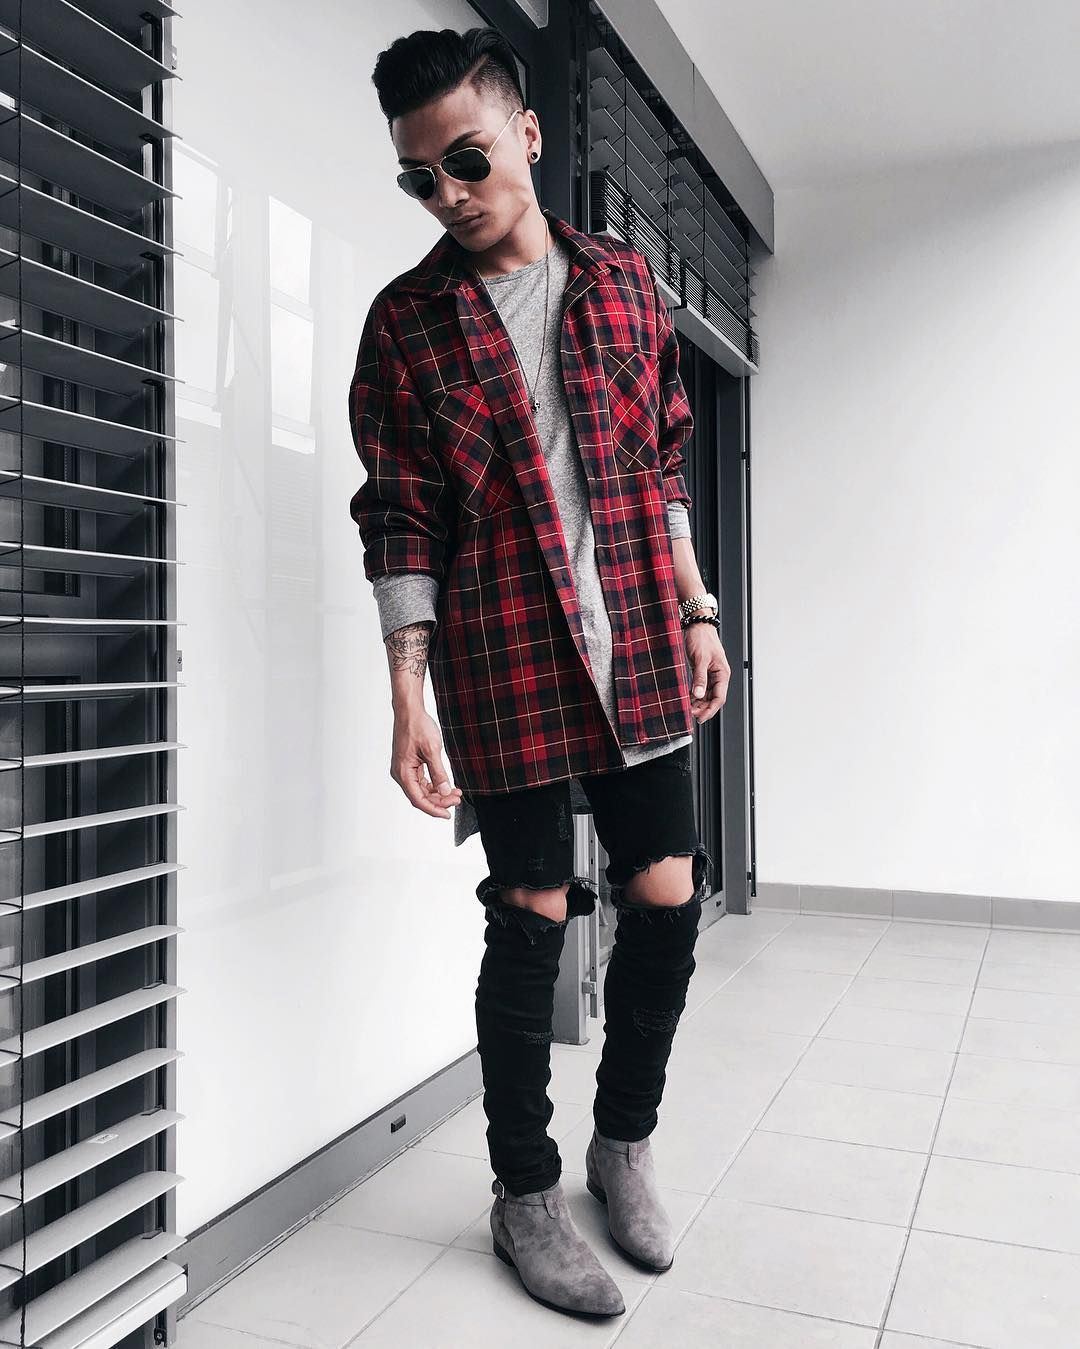 90s women fashion flannel  Pin by Denise Hong on Male Fashion  Pinterest  Male fashion